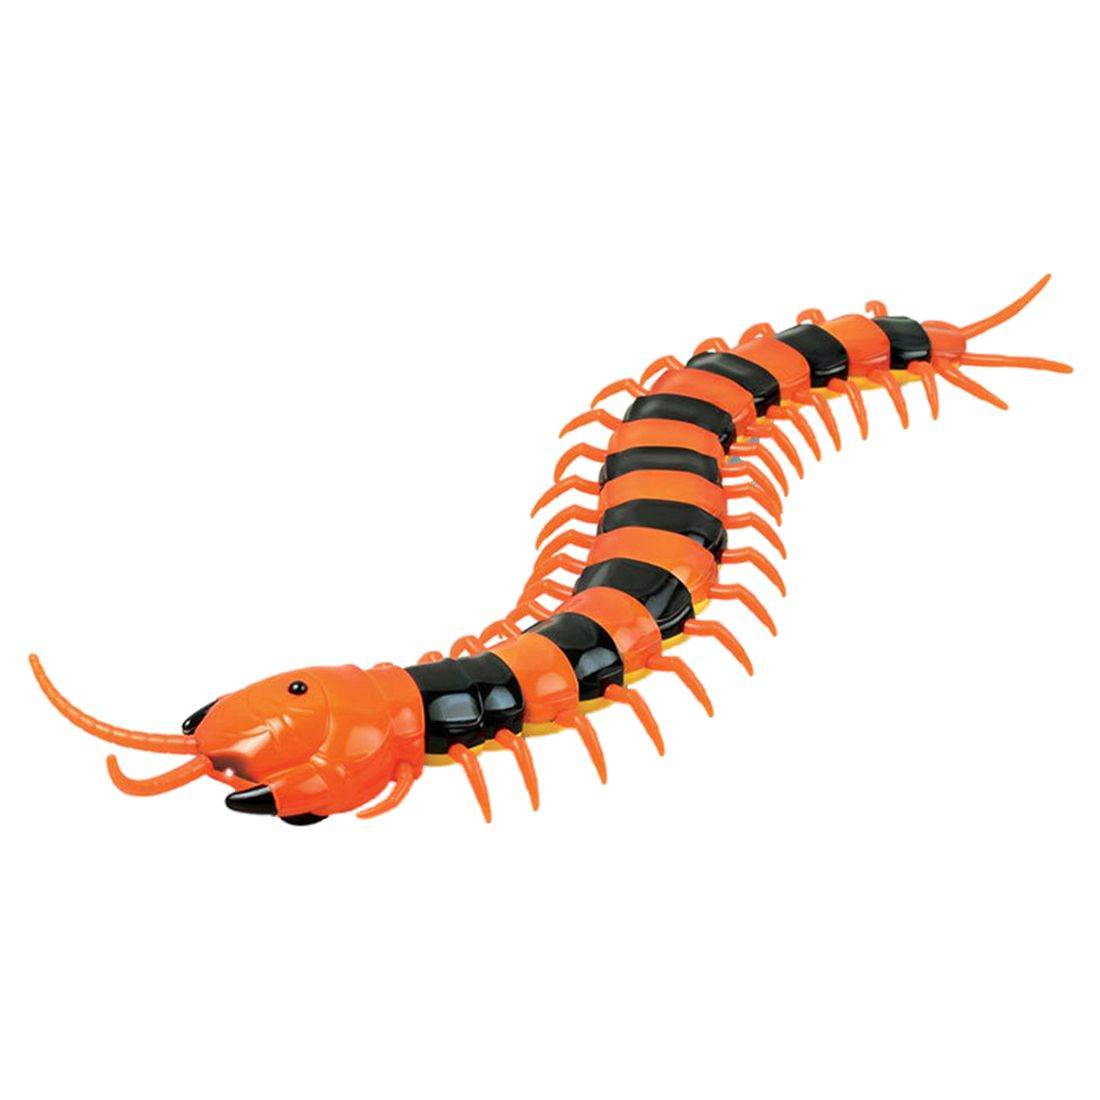 New Infrared RC Remote Control Centipede Scolopendra Creepy-crawly Kids Toy Gift,Orange&BlackNew Infrared RC Remote Control Centipede Scolopendra Creepy-crawly Kids Toy Gift,Orange&Black